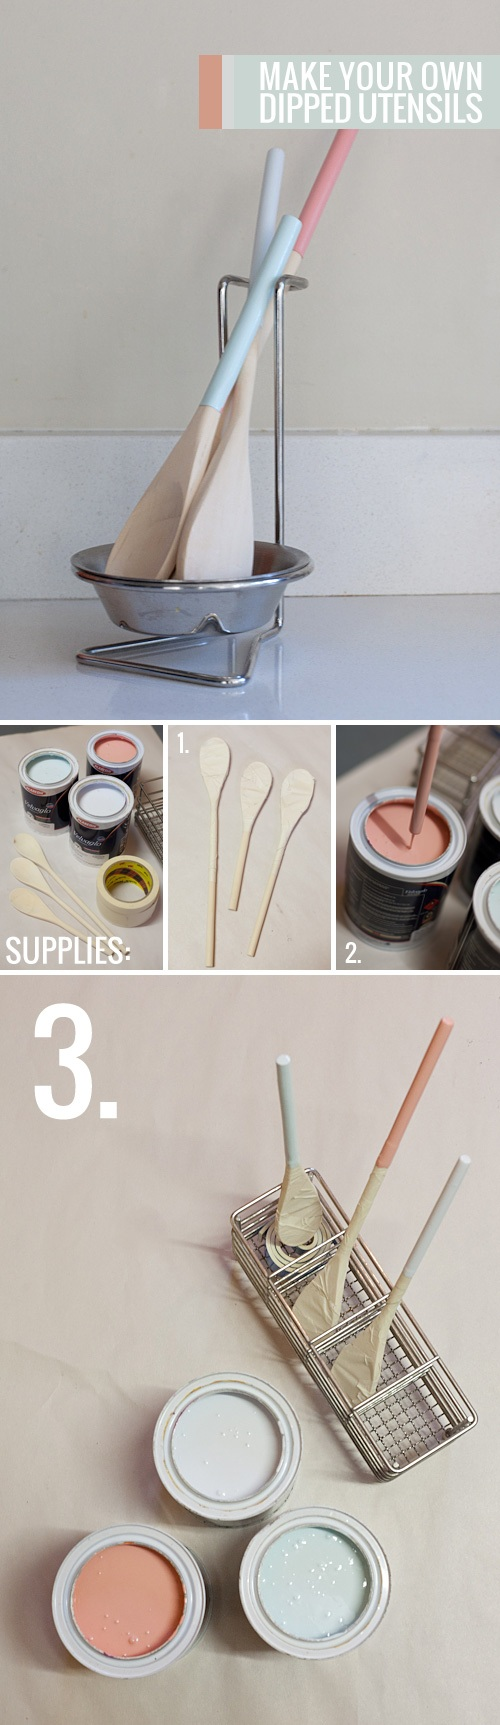 Make your own dipped utensils